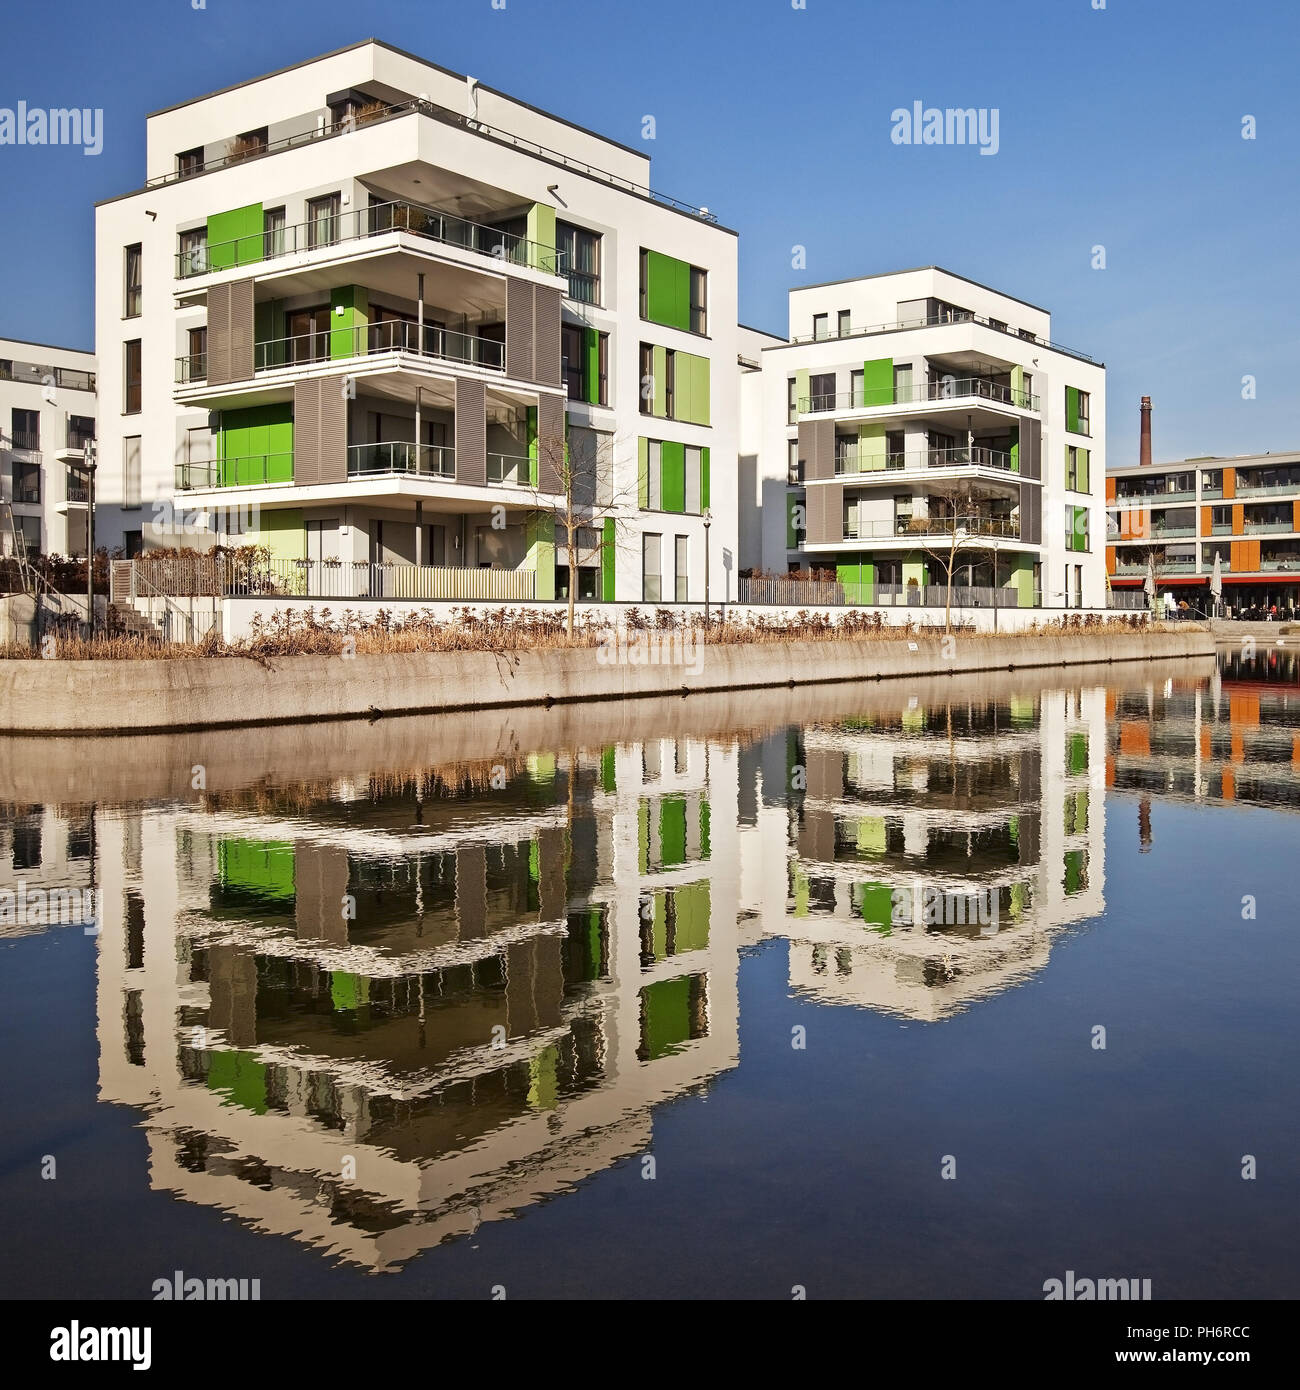 modern buildings of district 'Gruene Mitte', Essen - Stock Image